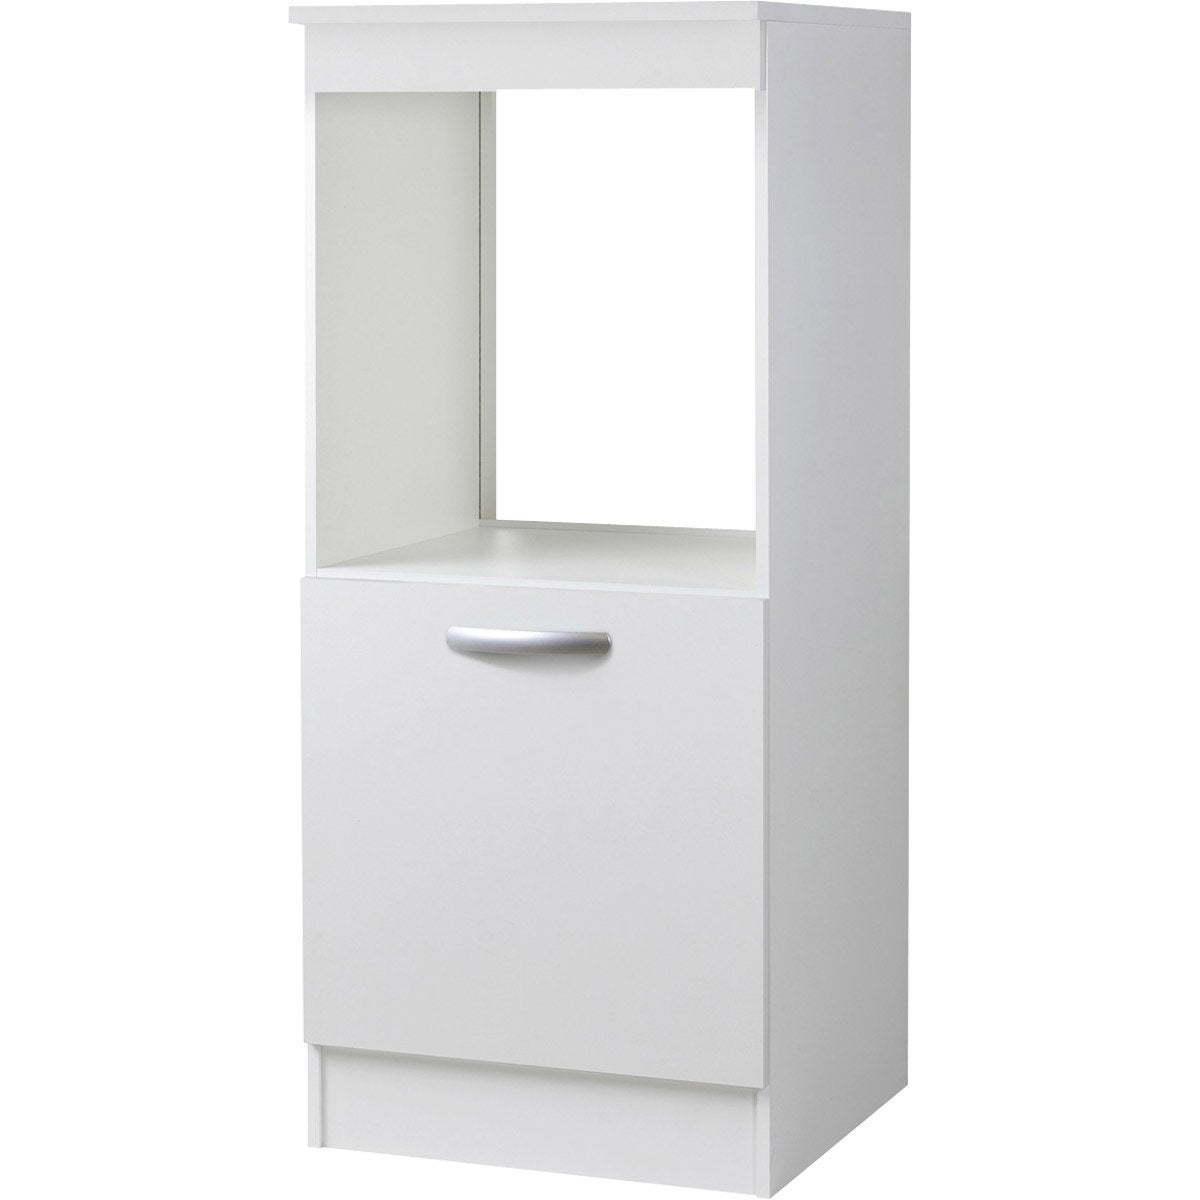 meuble de cuisine 1 2 colonne 1 porte blanc l60x p60cm leroy merlin. Black Bedroom Furniture Sets. Home Design Ideas